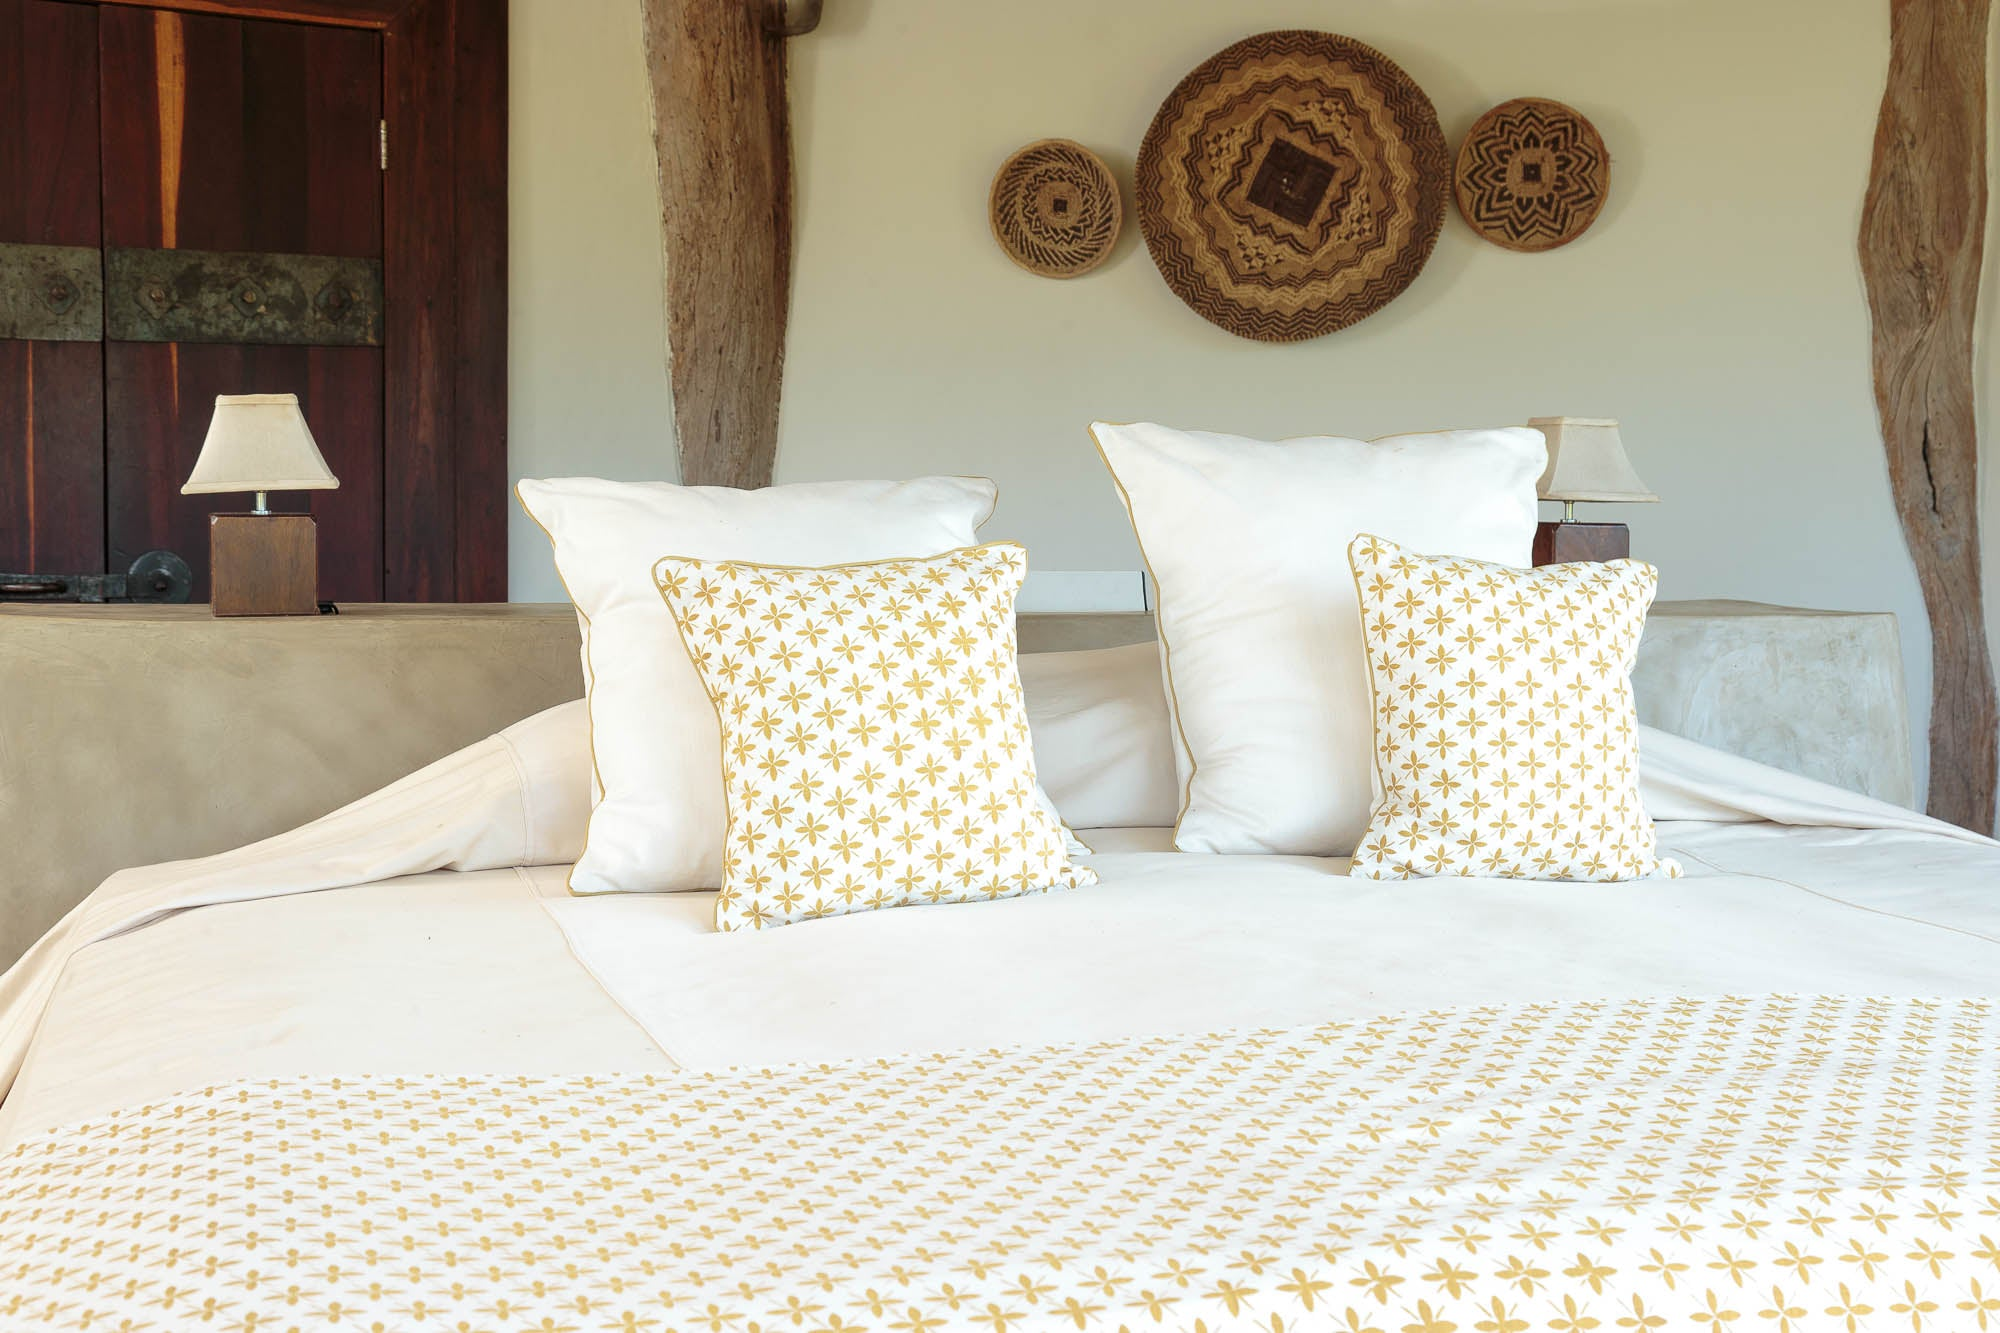 Tribal Textiles at Luangwa House